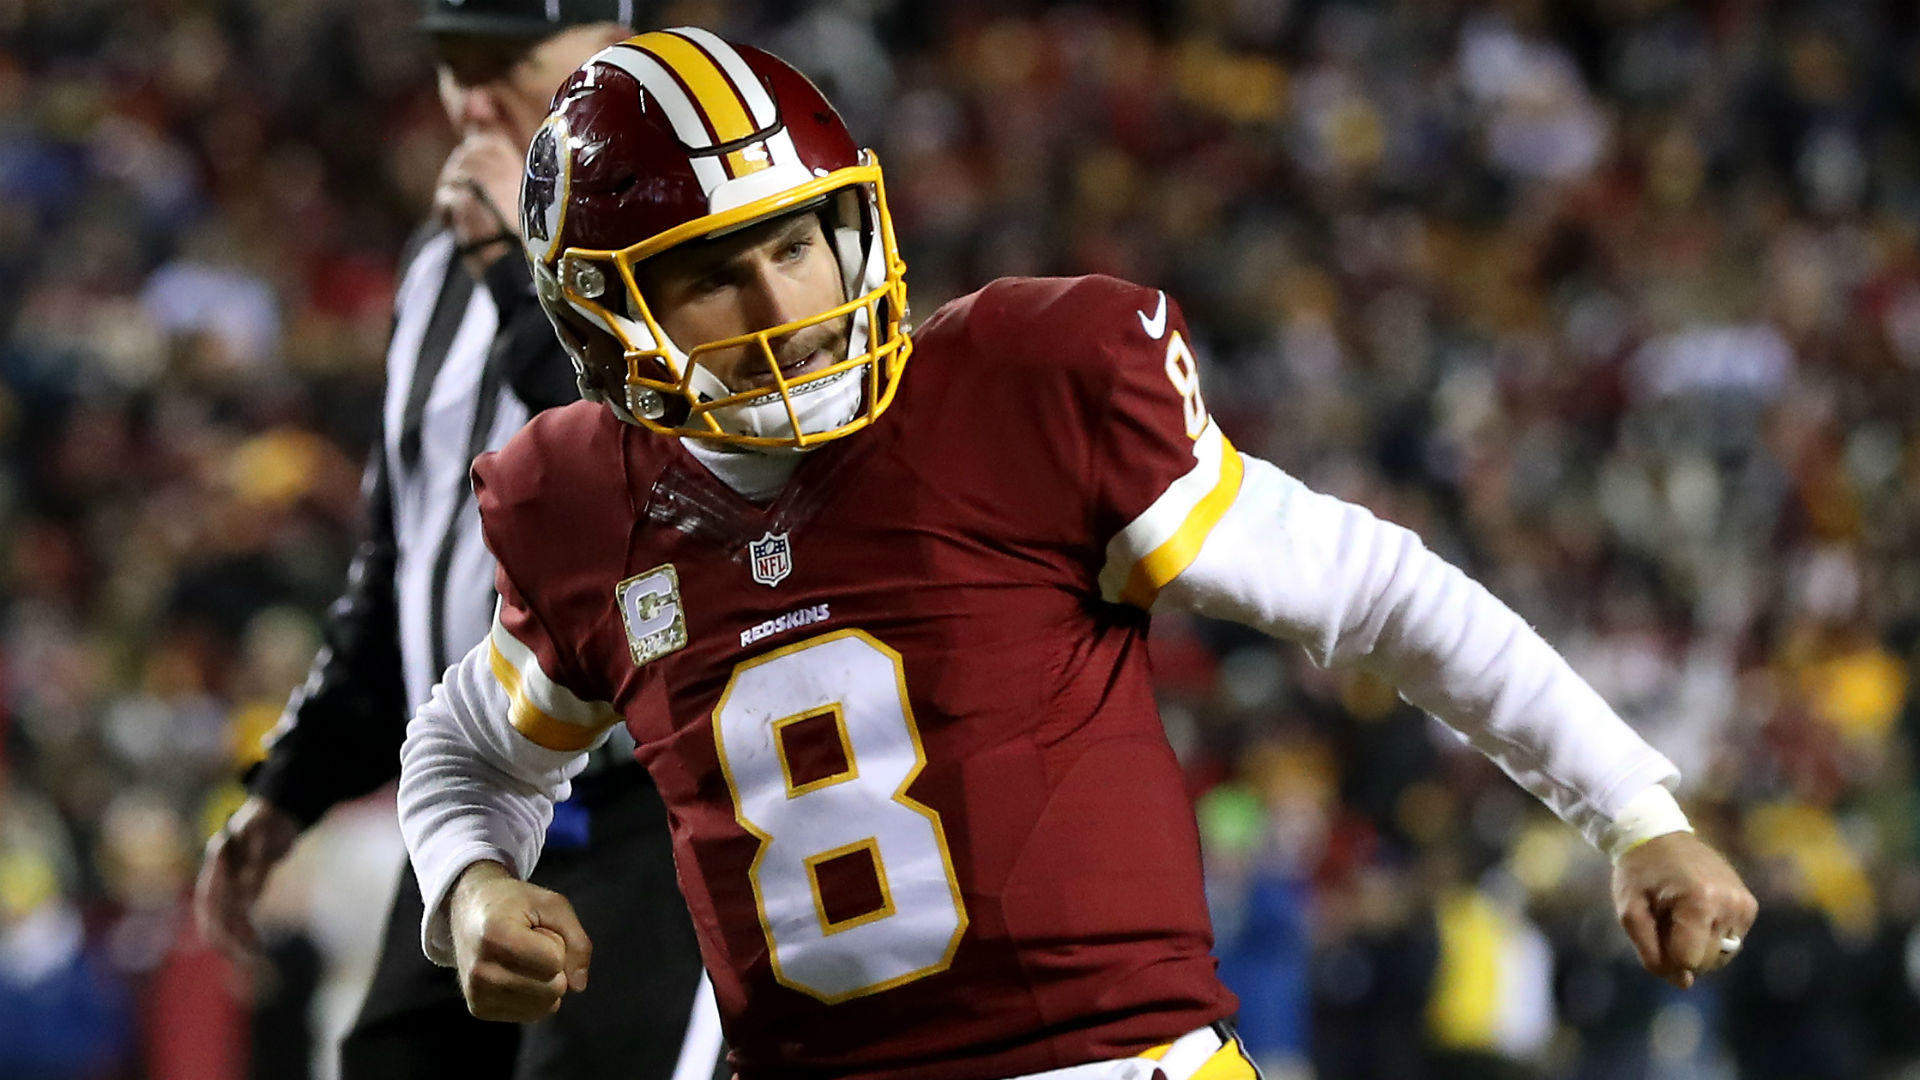 Redskins QB Kirk Cousins named NFC Offensive Player of the Week